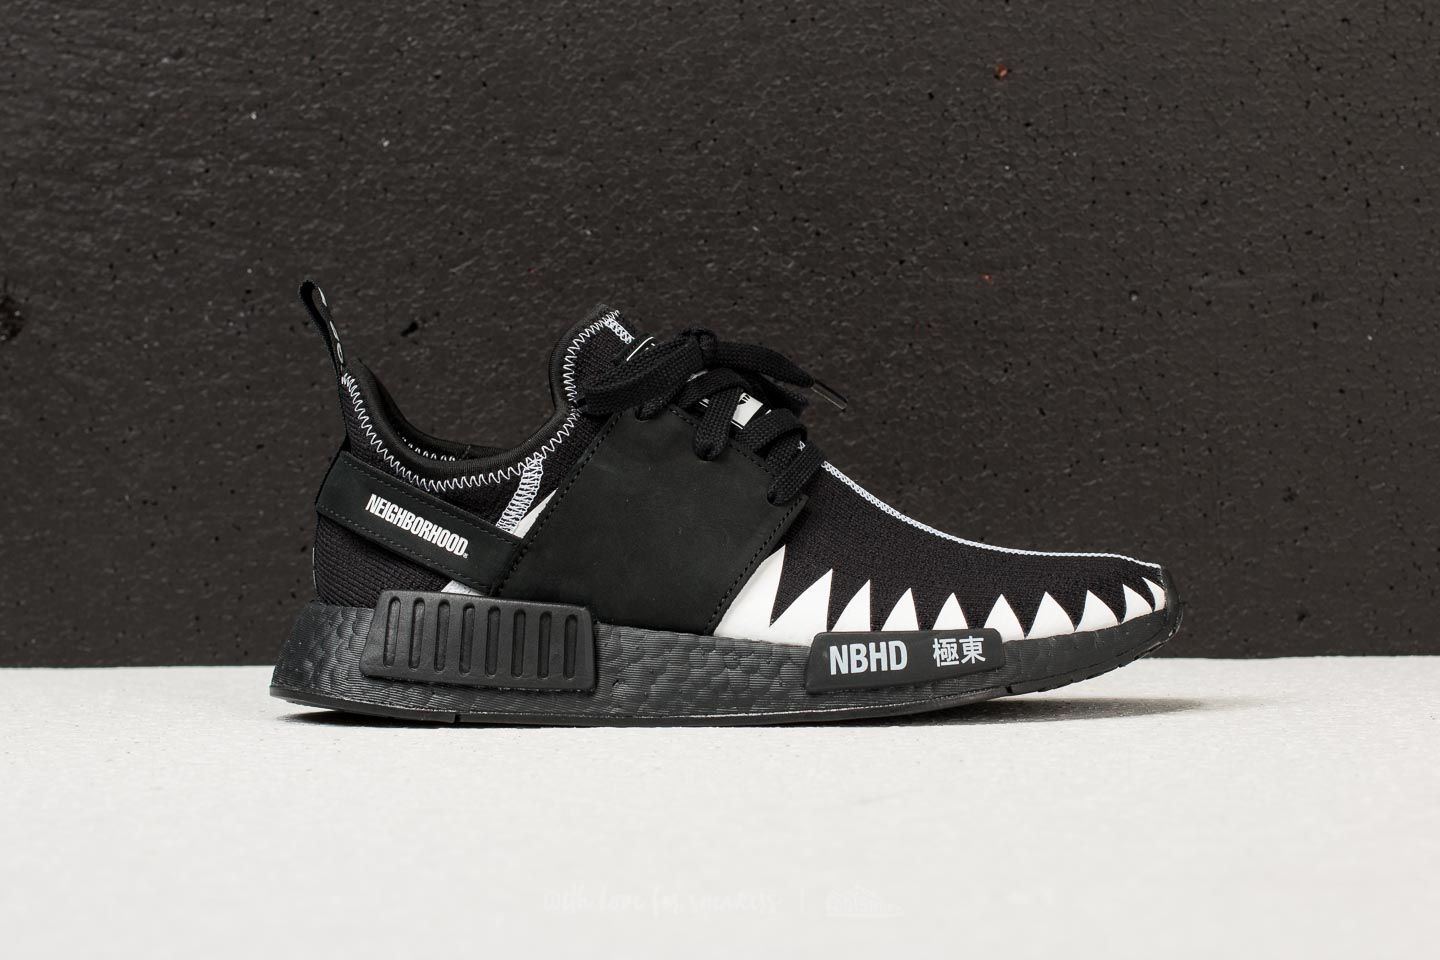 buy online 5def4 b7c22 adidas x Neighborhood NMD R1 Primeknit Black/ Black/ White ...